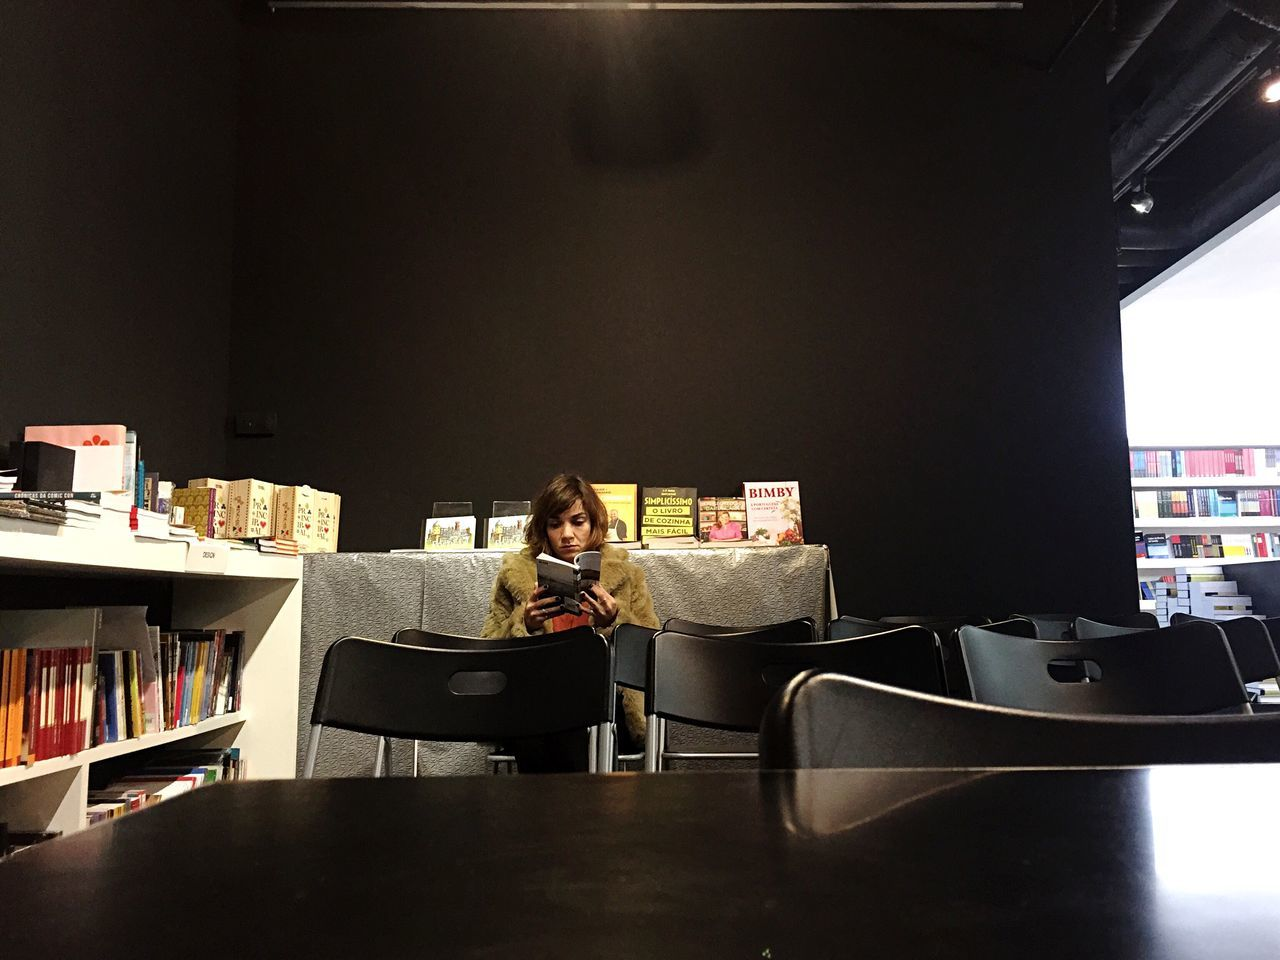 Sitting Chair Young Adult Women Real People Reading A Book Riding Library Book Store Quiet Silence Focus